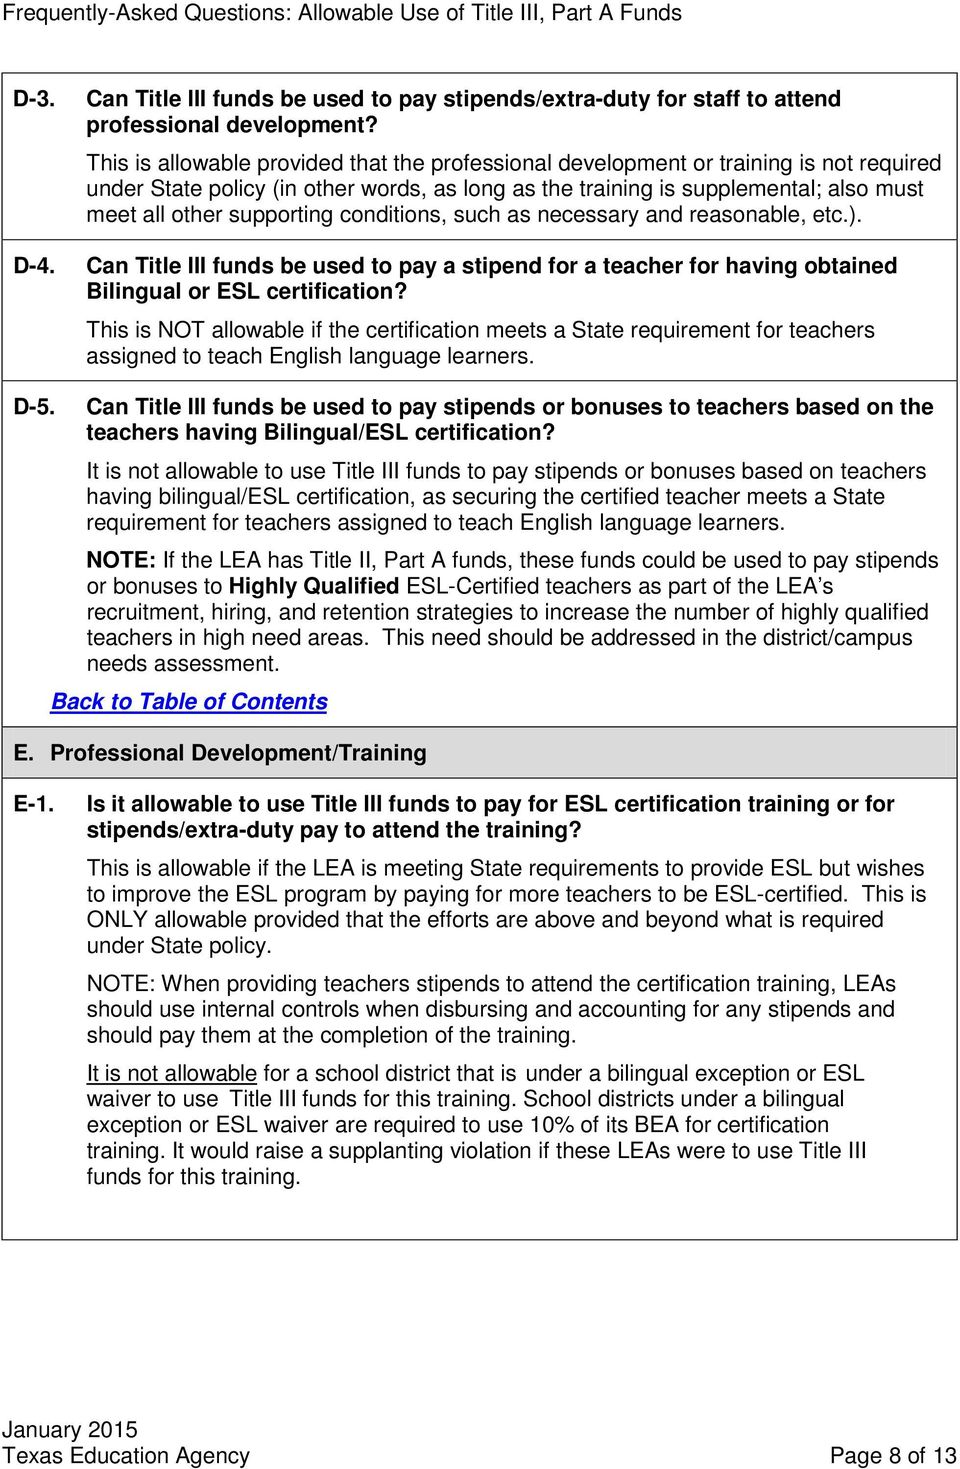 supporting conditions, such as necessary and reasonable, etc.). Can Title III funds be used to pay a stipend for a teacher for having obtained Bilingual or ESL certification?